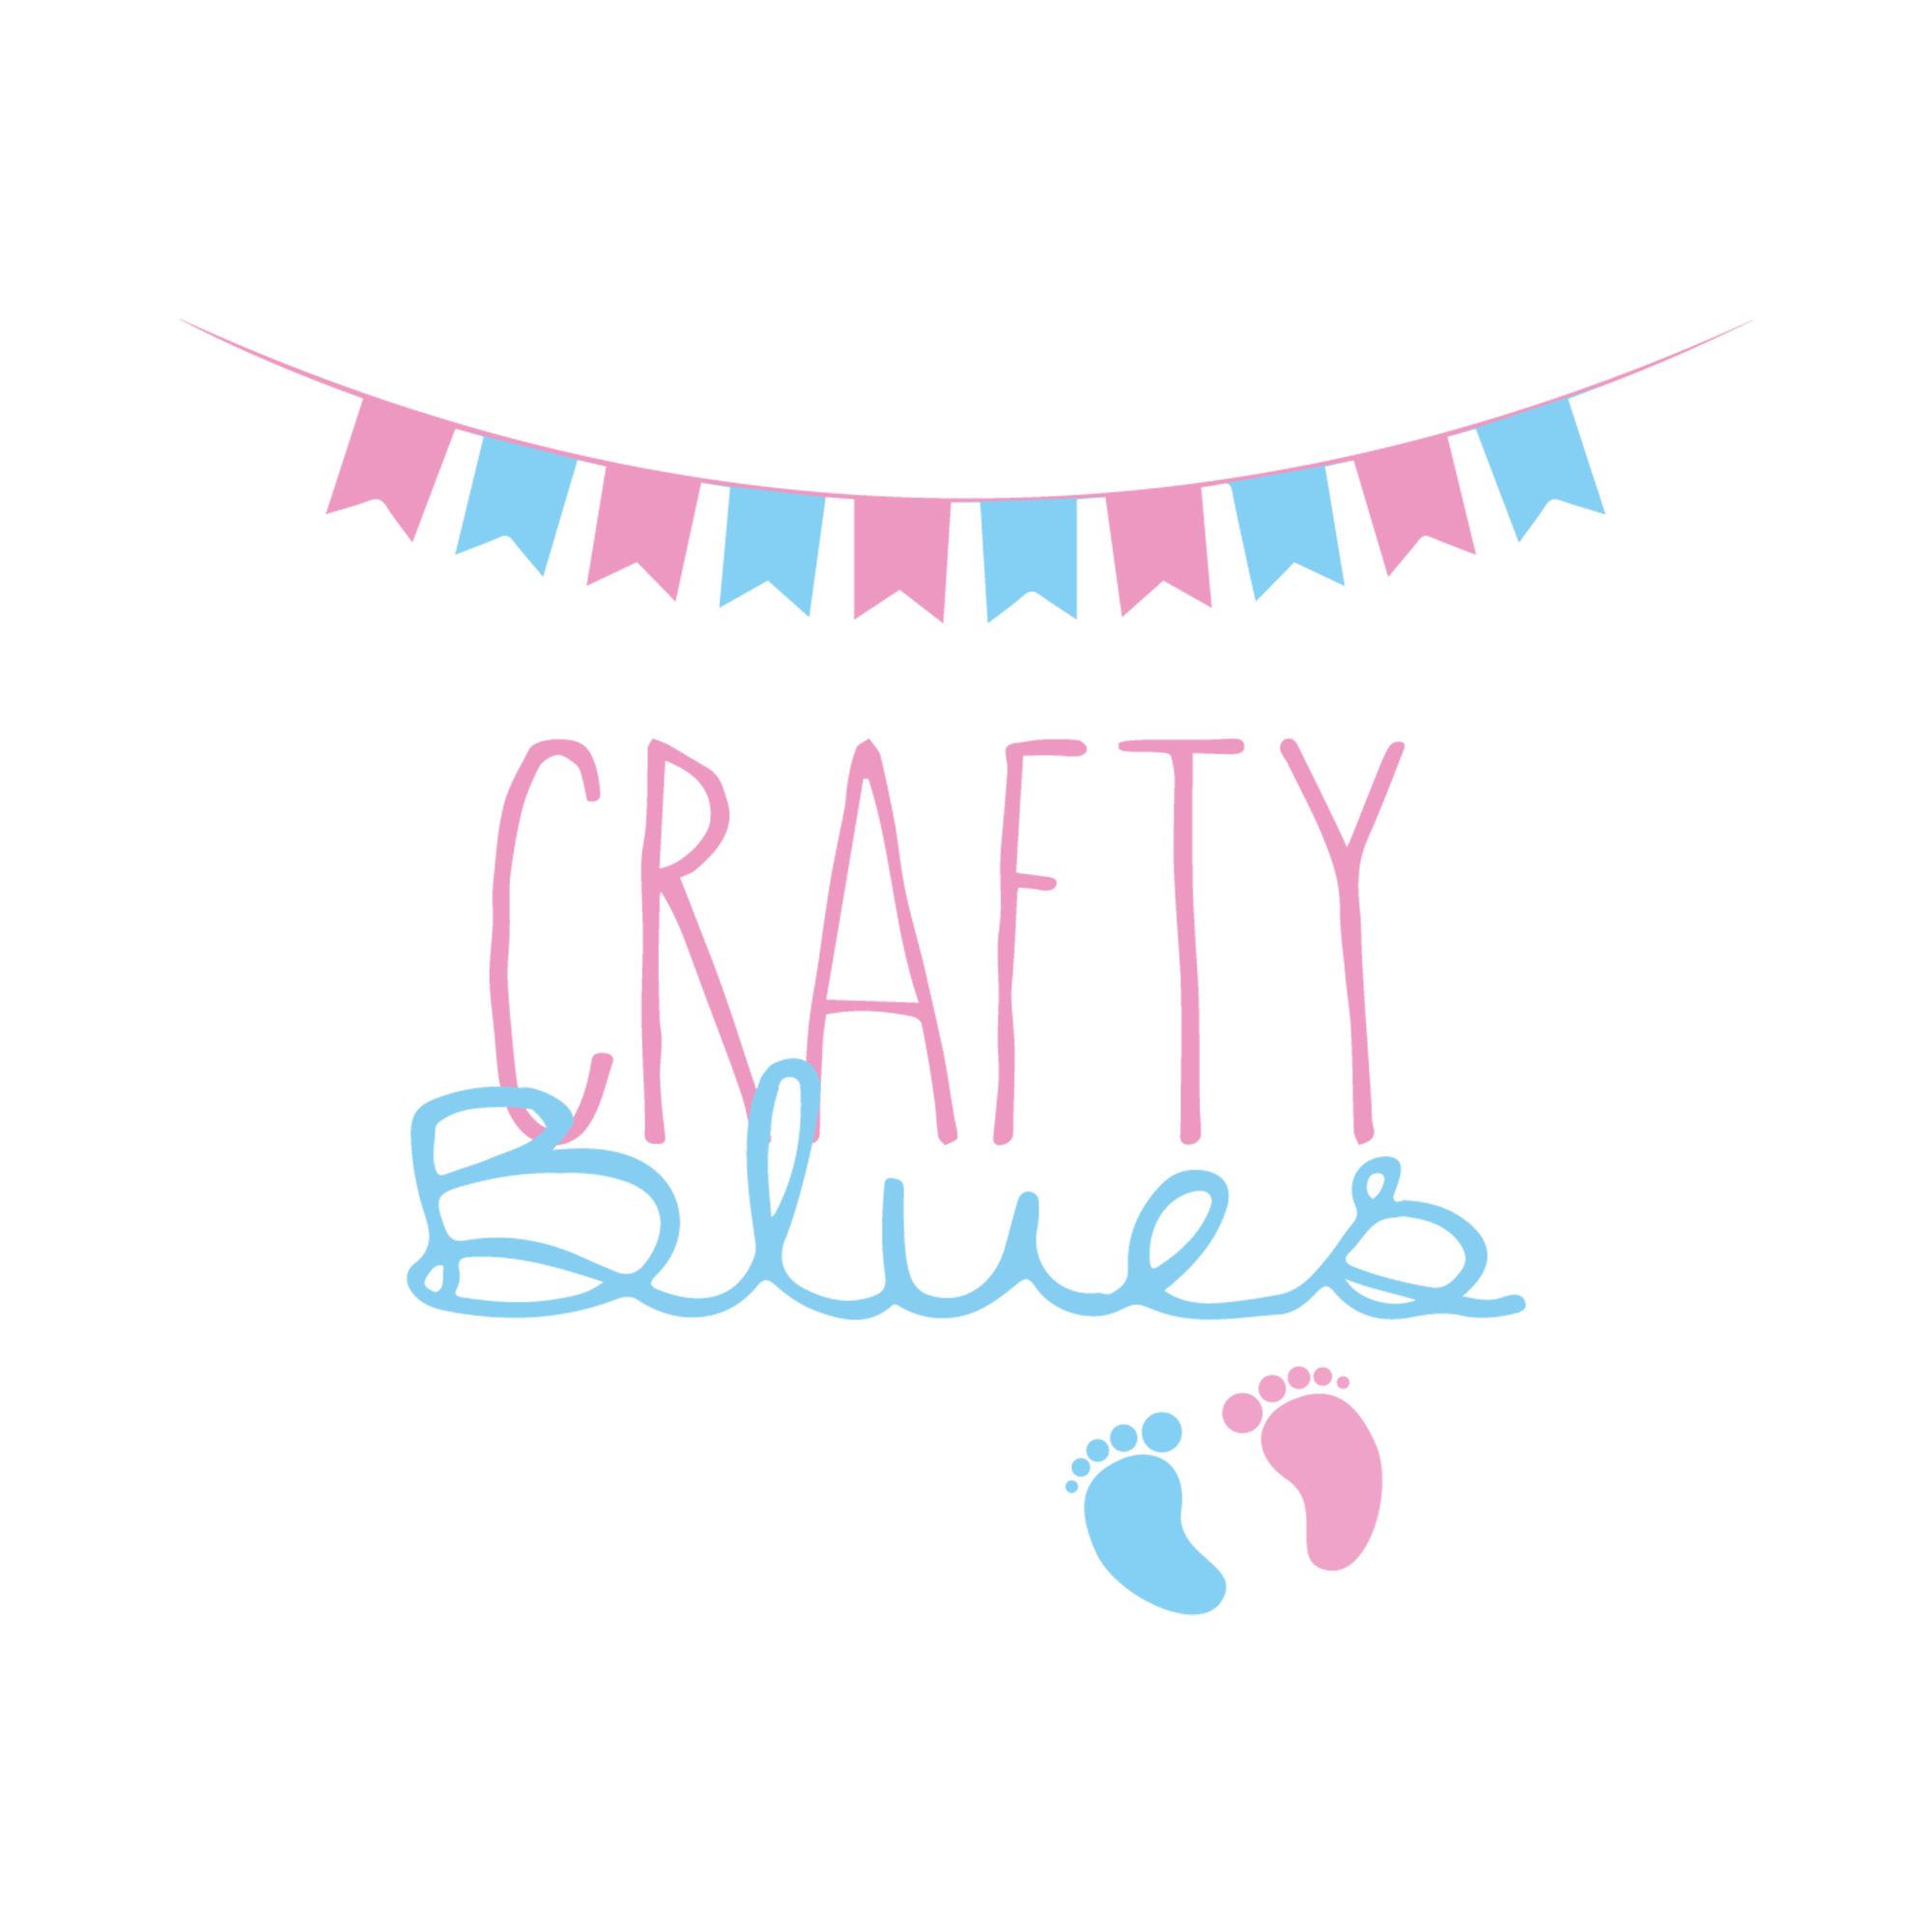 Crafty Blues